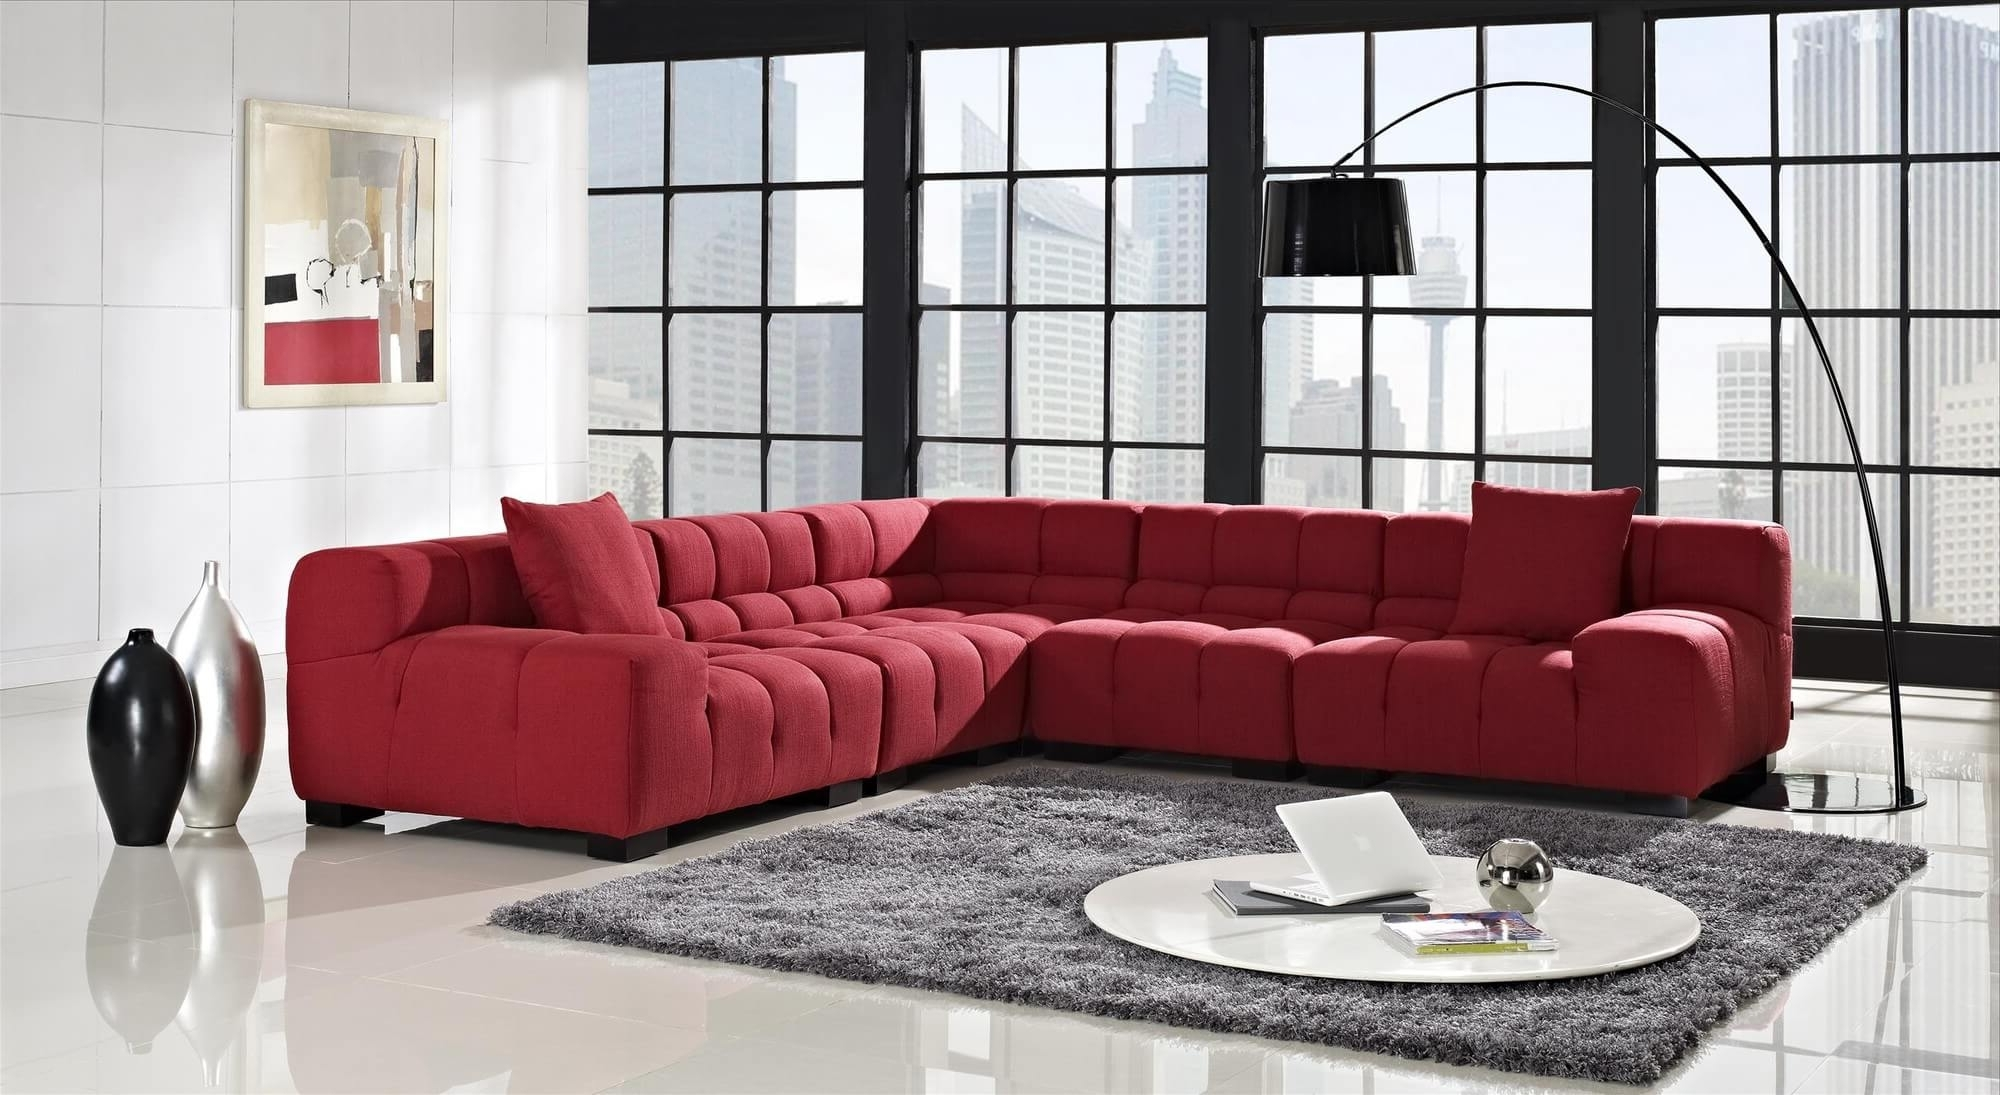 18 Stylish Modern Red Sectional Sofas Within Trendy Small Red Leather Sectional Sofas (View 12 of 15)